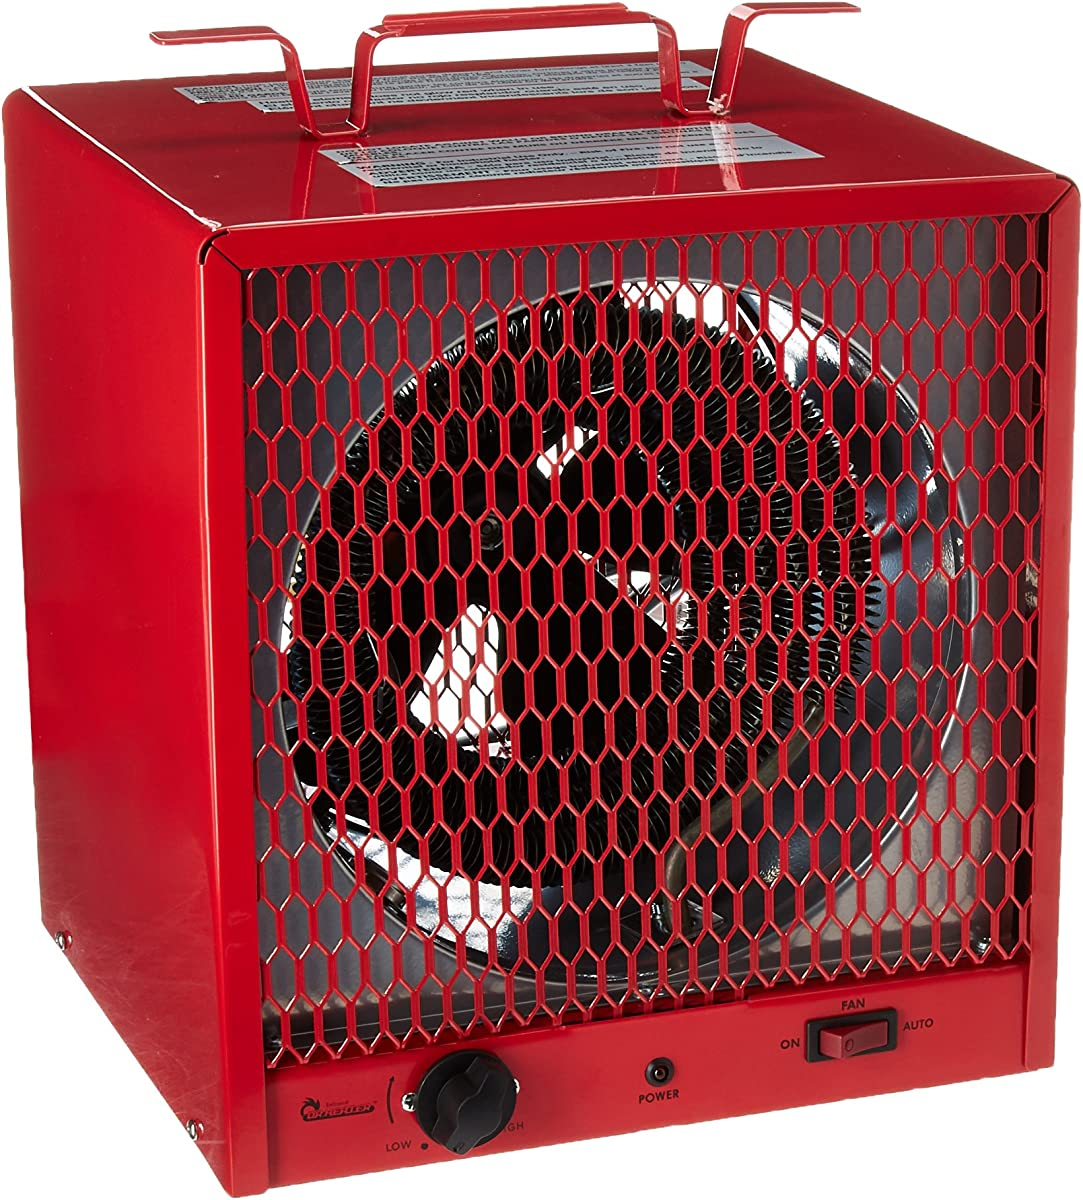 240v electric garage heater